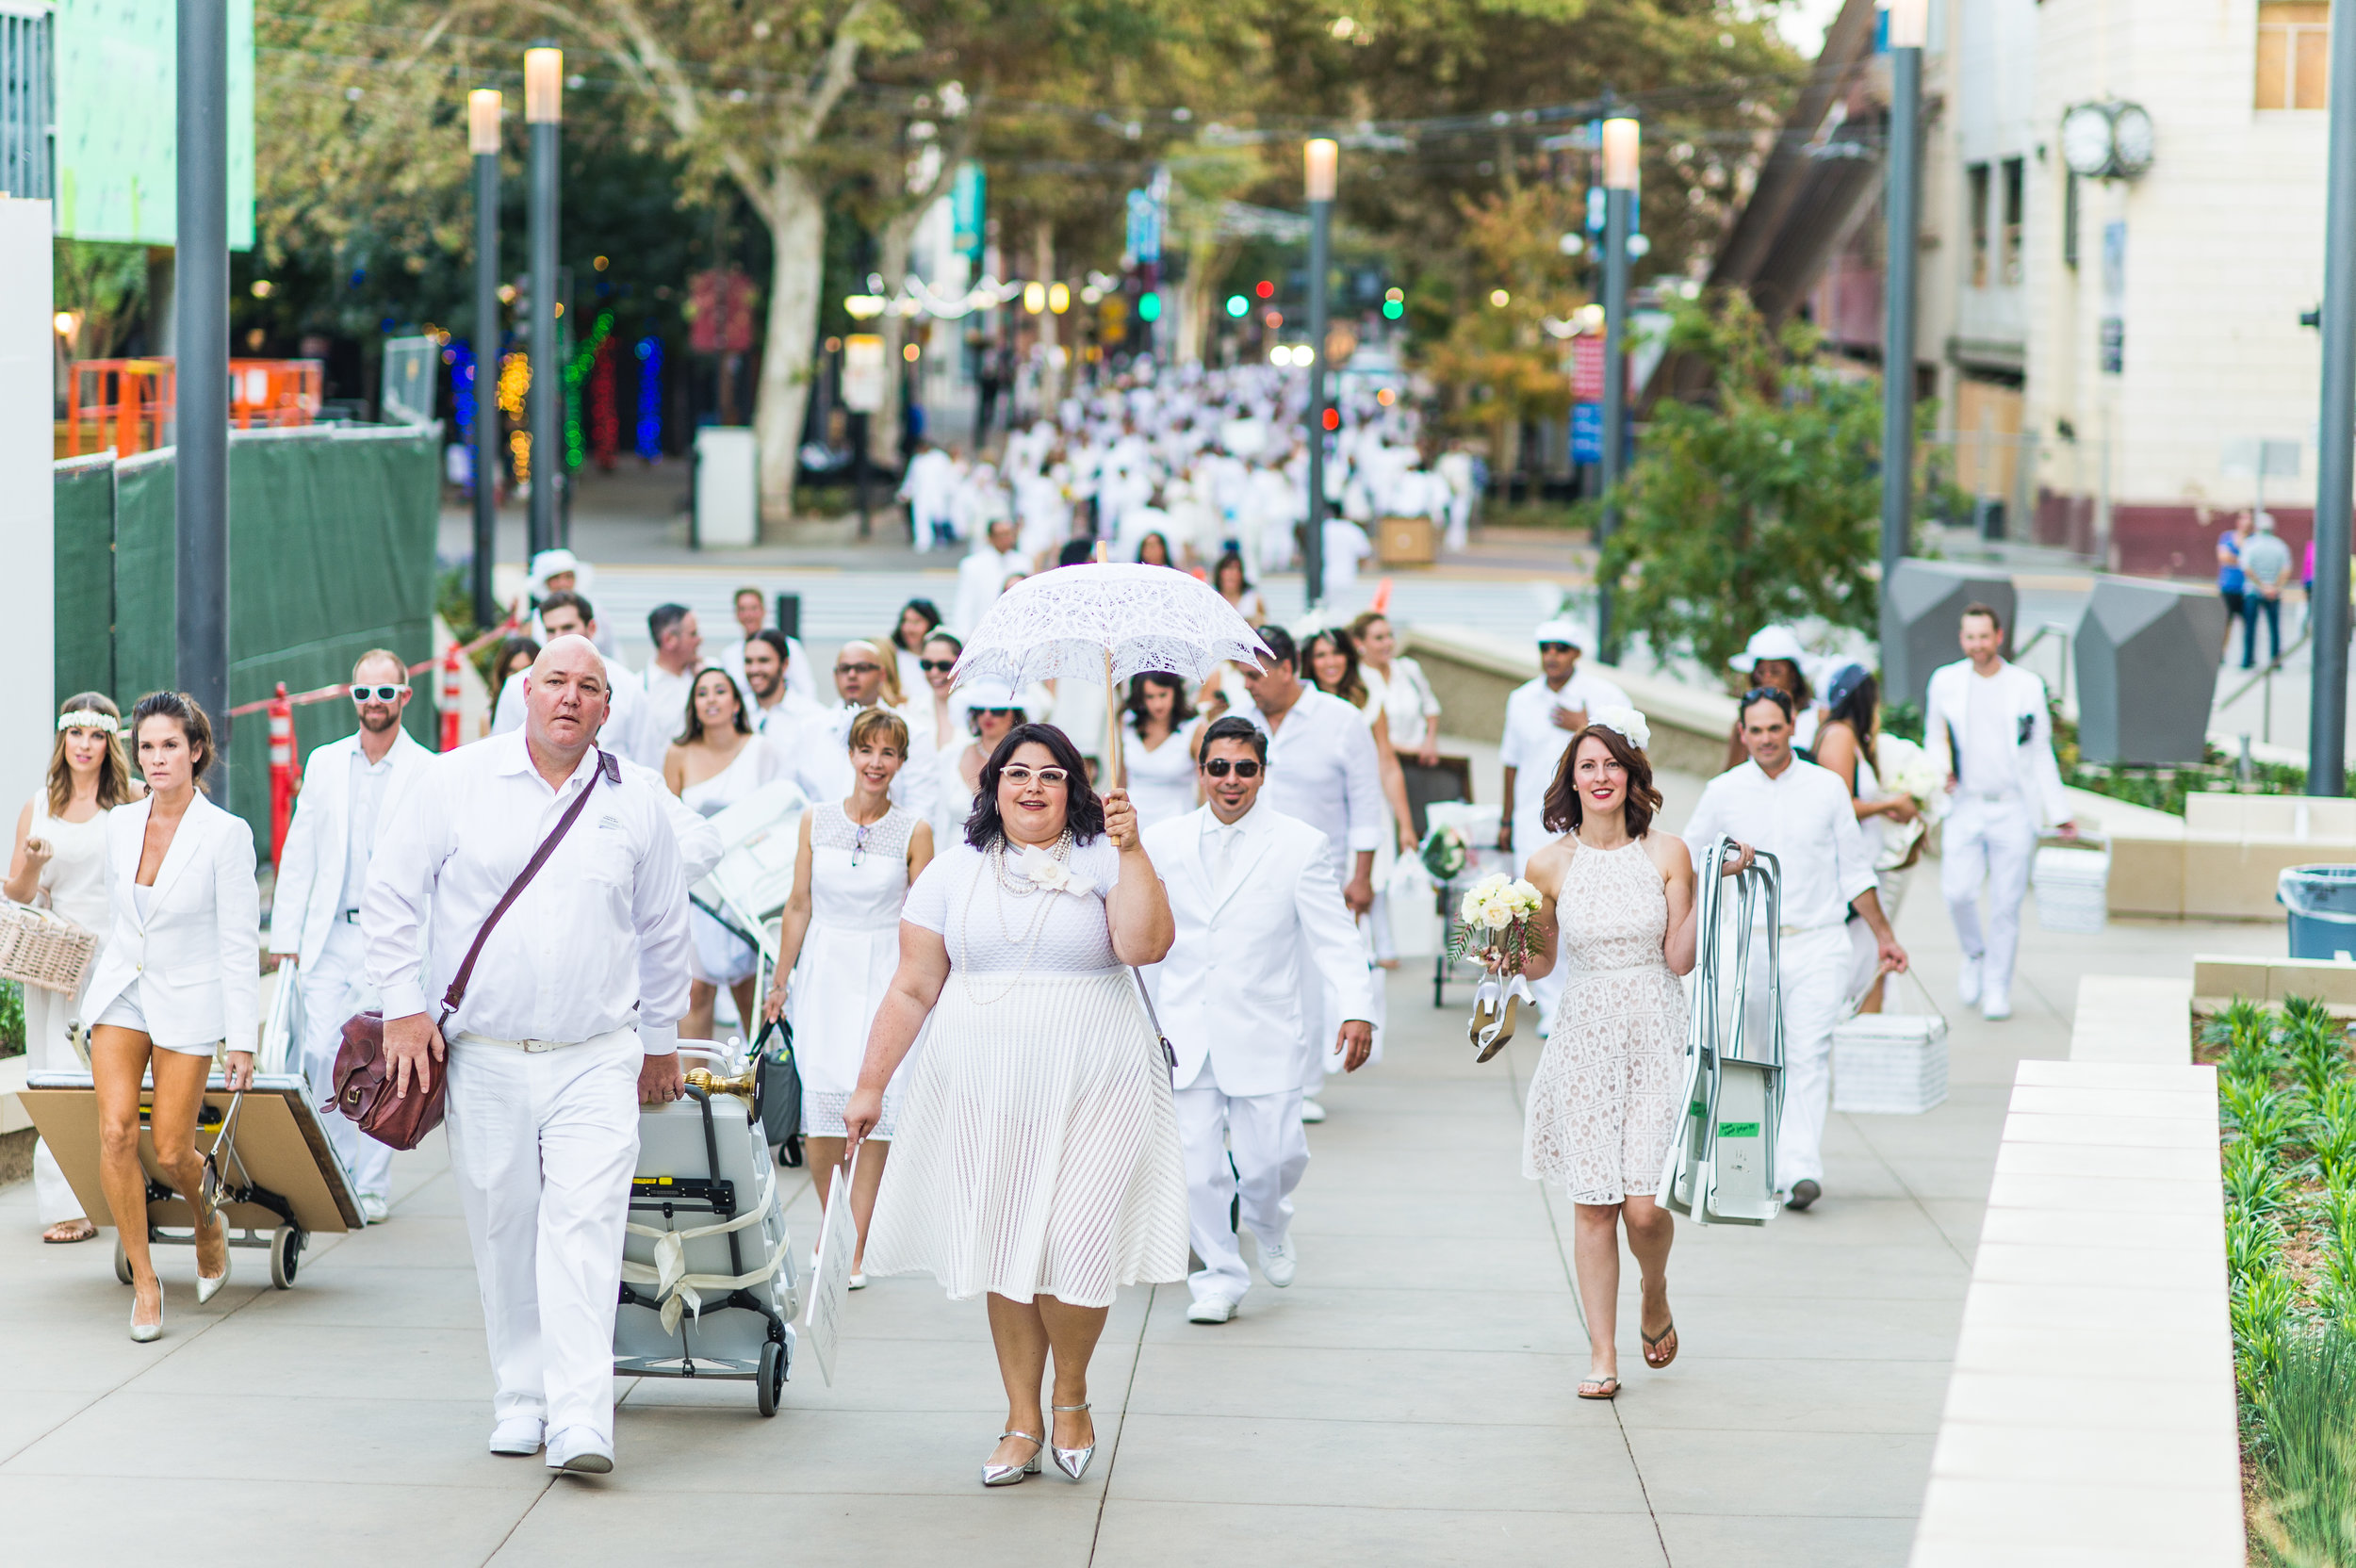 Diner_En_Blanc_2016_Sacramento_Photo_Roderick_Cooney_-32.jpg